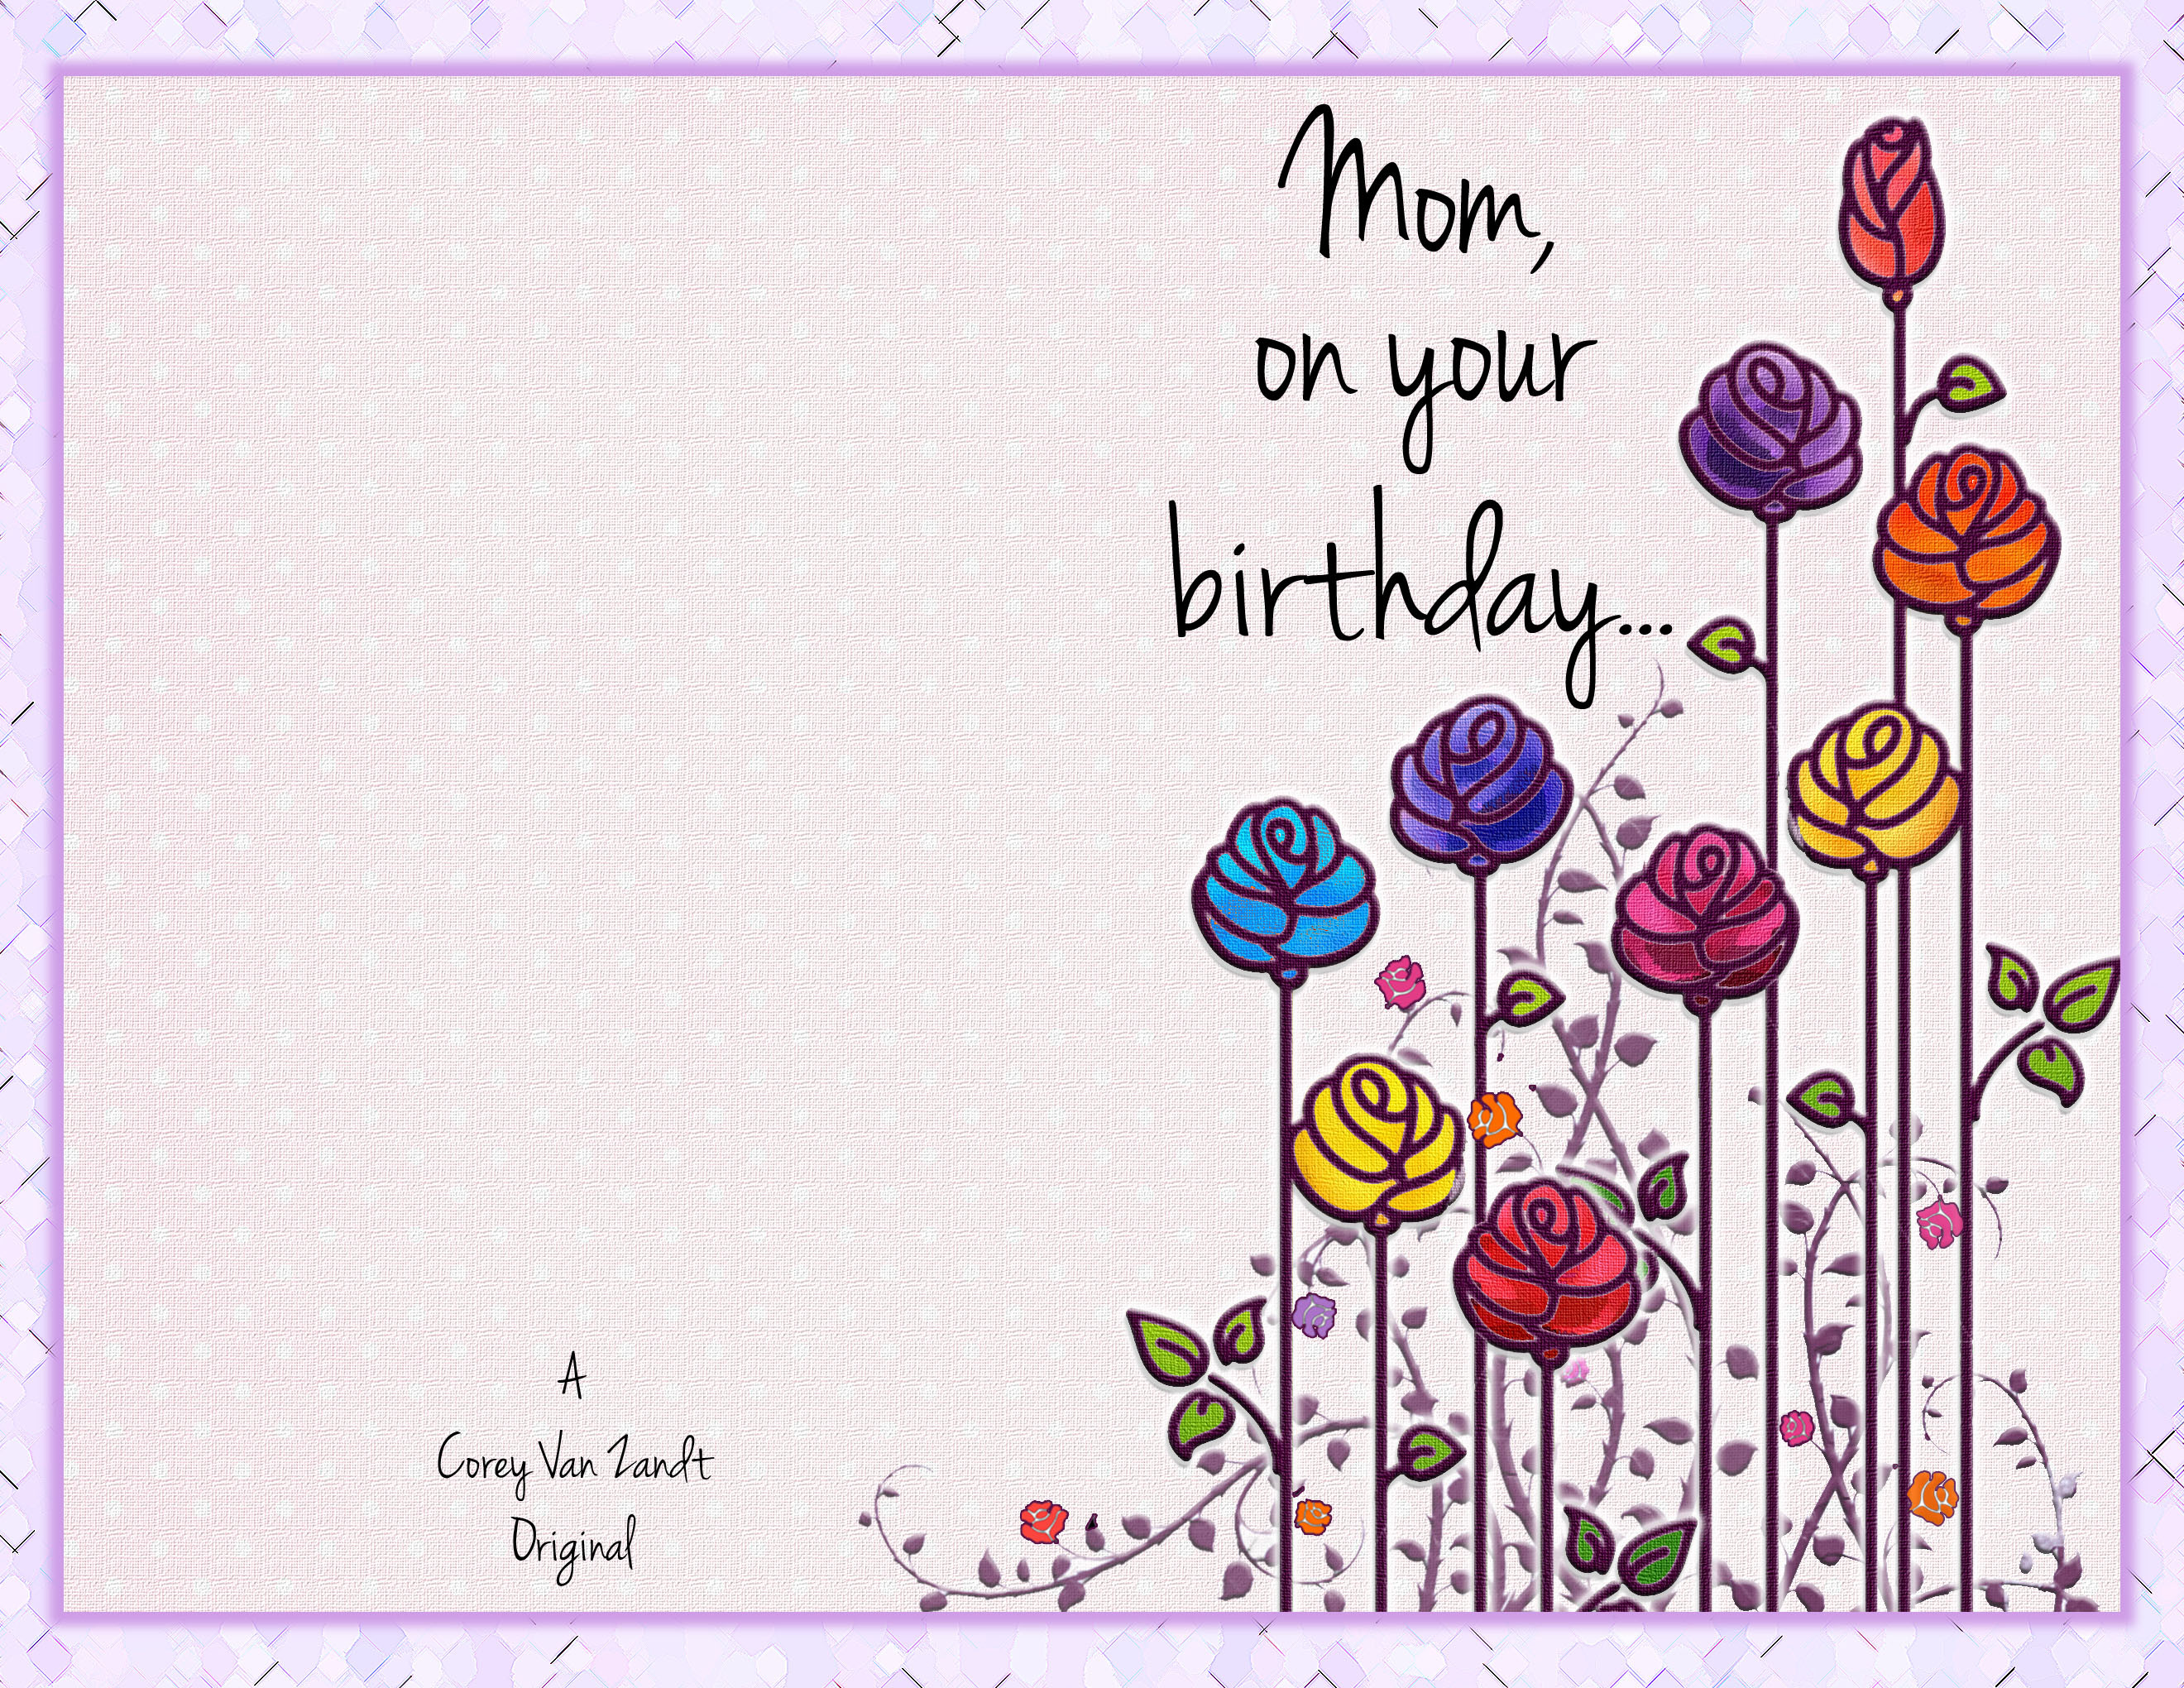 Birthday Card Backgrounds (16+ Images